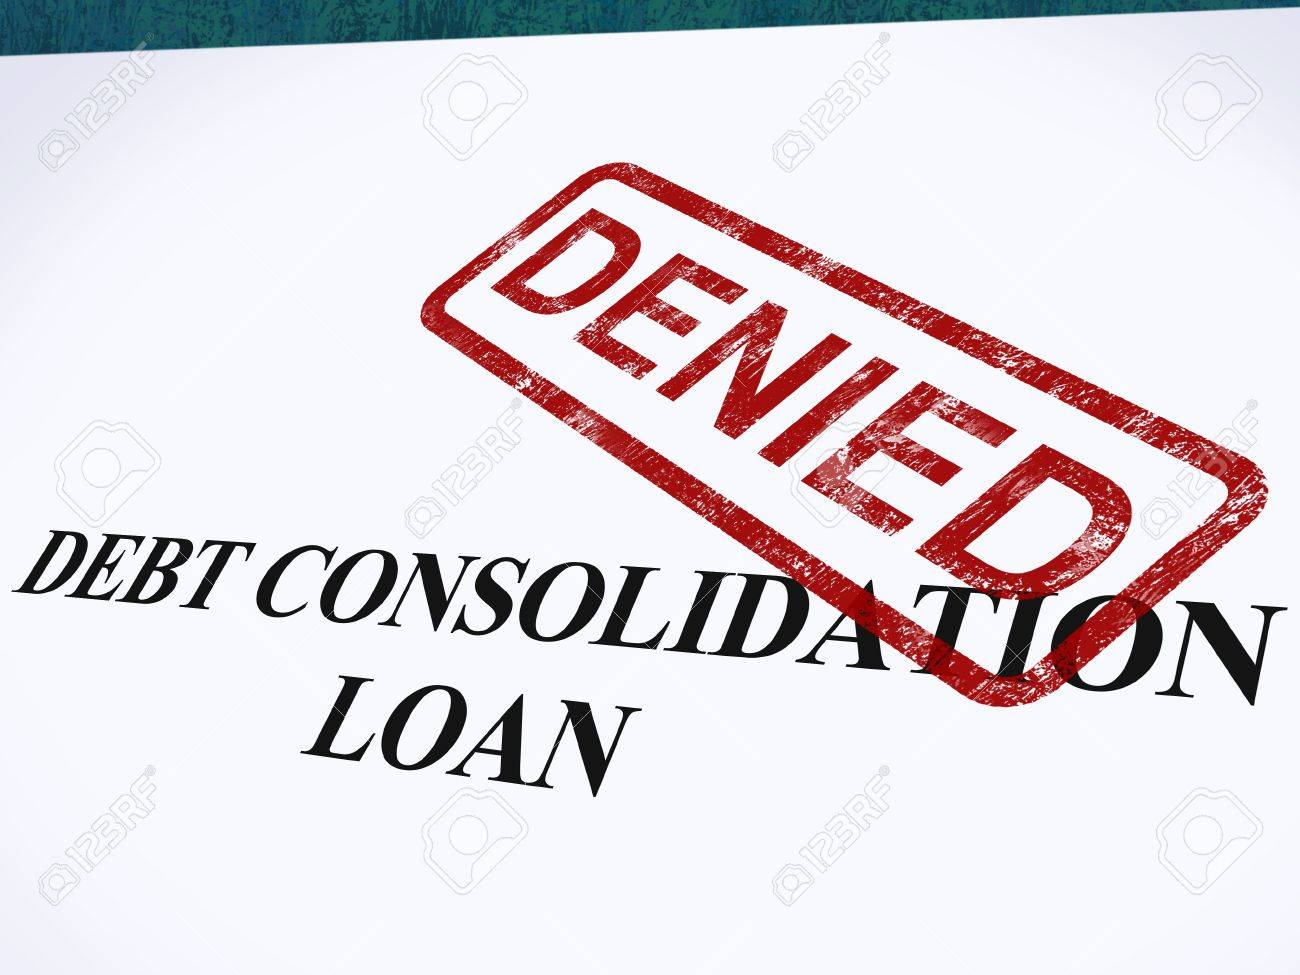 Debt Consolidation Loan Denied Stamp Showing Consolidated Loans Refused Stock Photo - 14055025